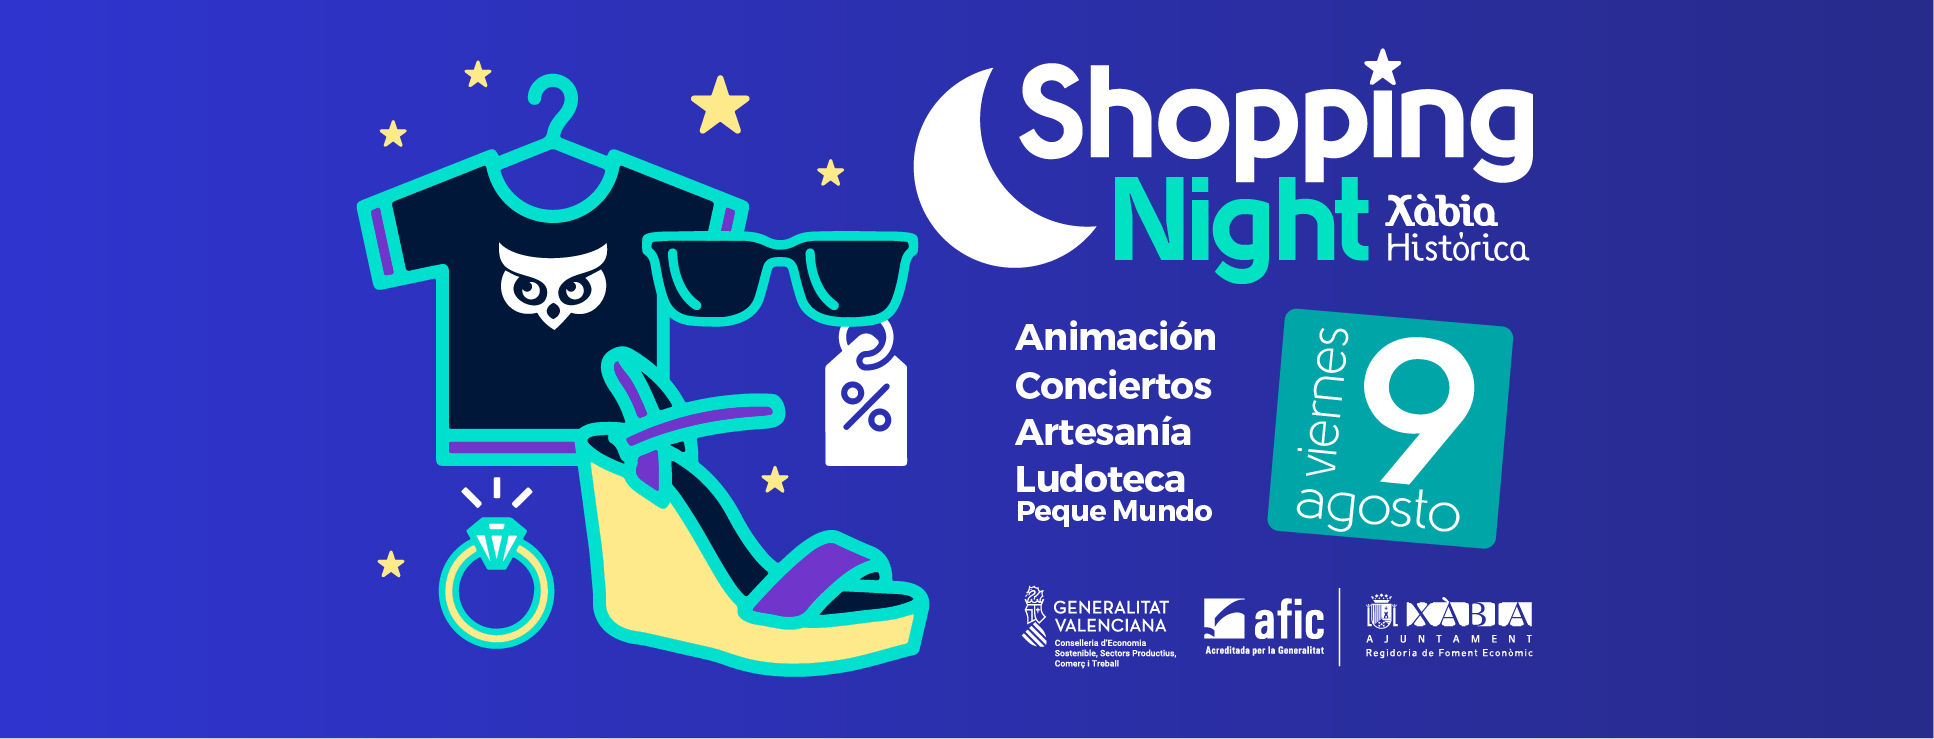 portada facebook shopping night agost 2019